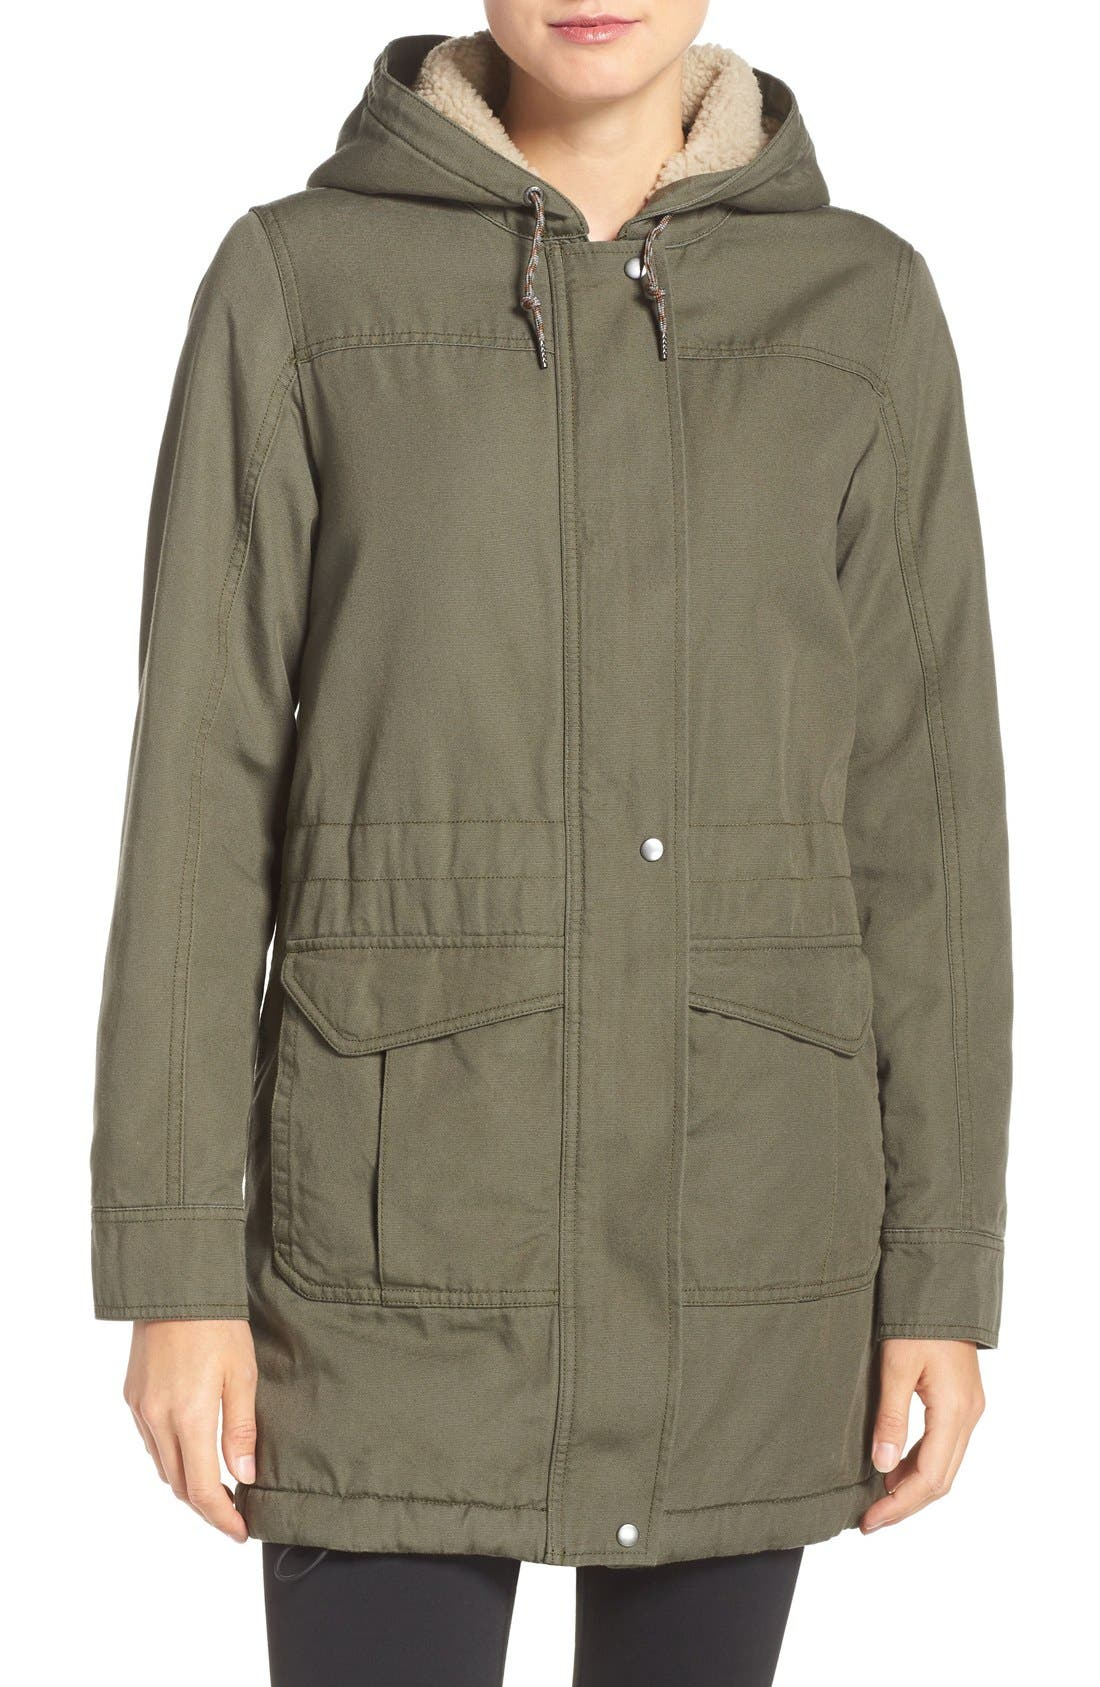 PATAGONIA Prairie Dawn Canvas Parka